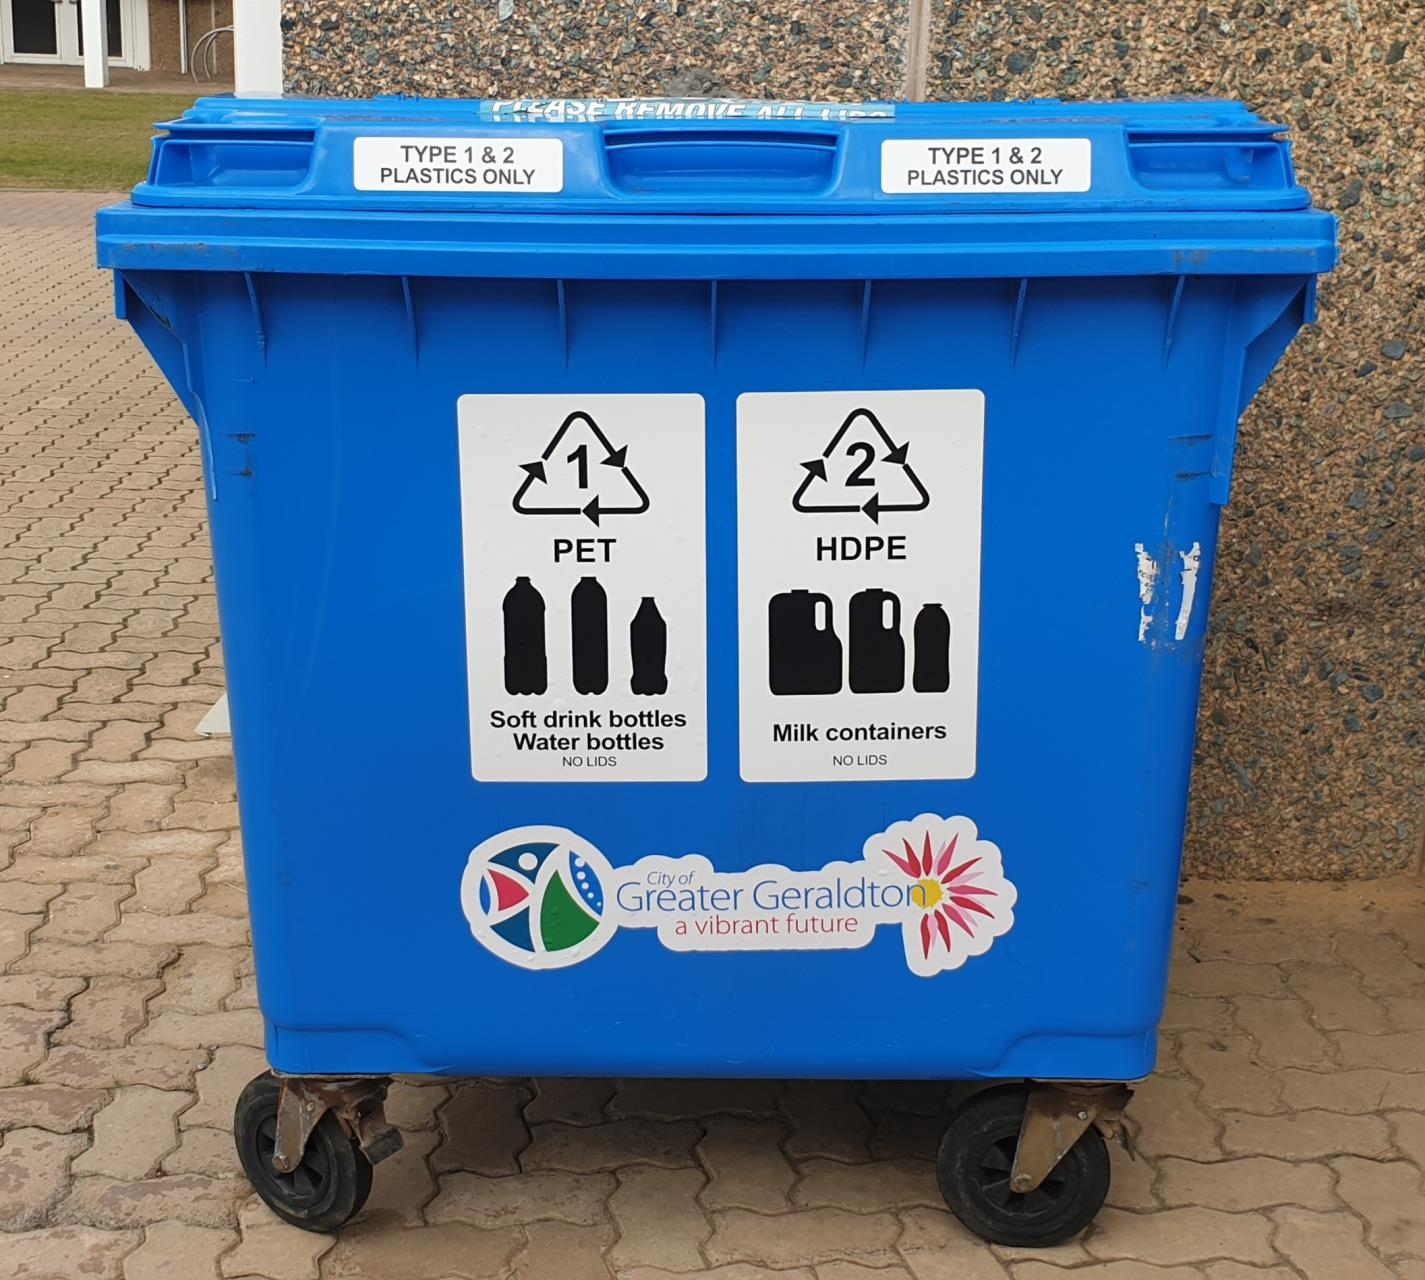 New stickers display what can be recycled in the blue bins.